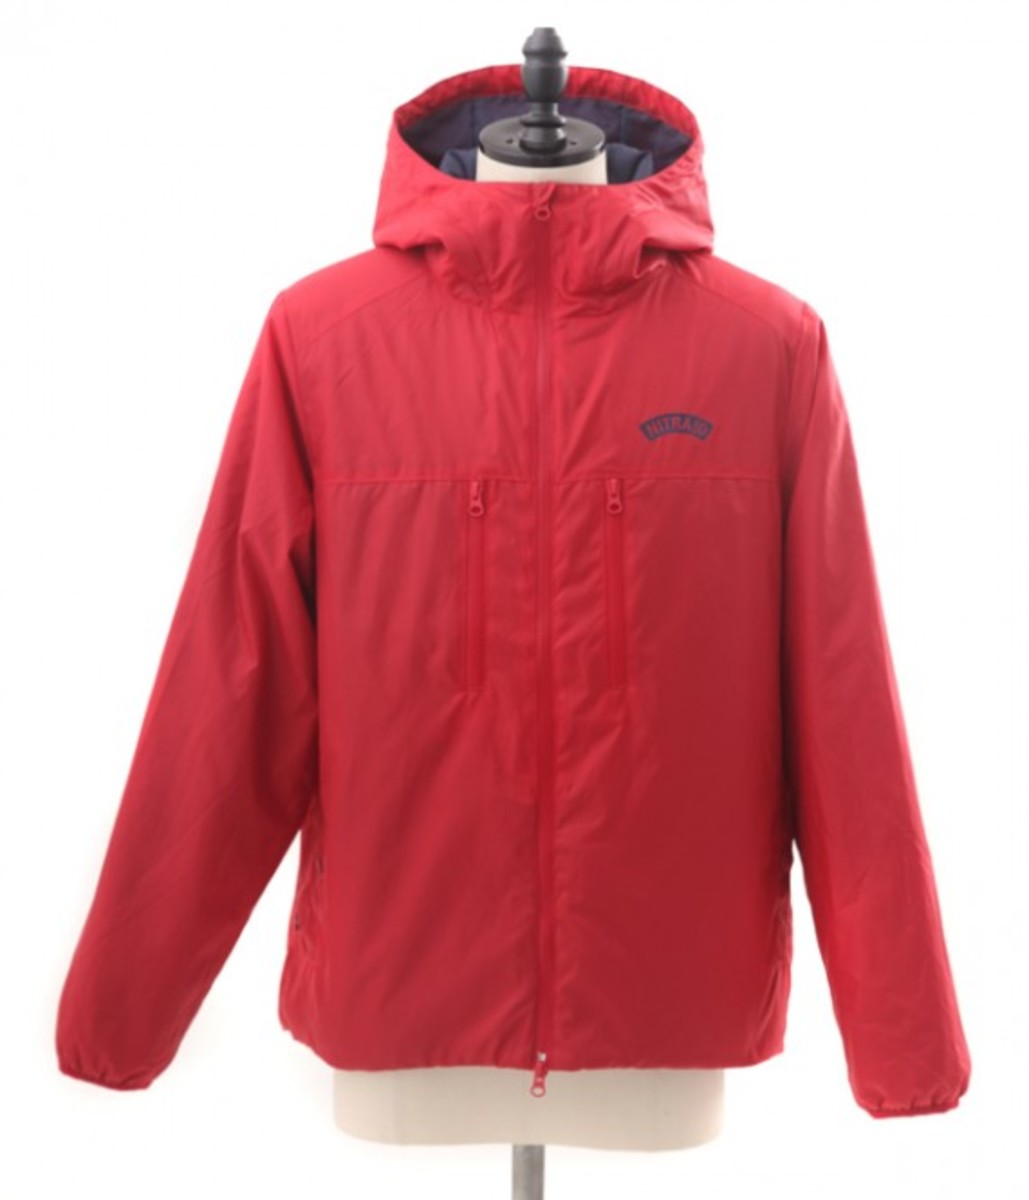 Insulation Hoodie Red